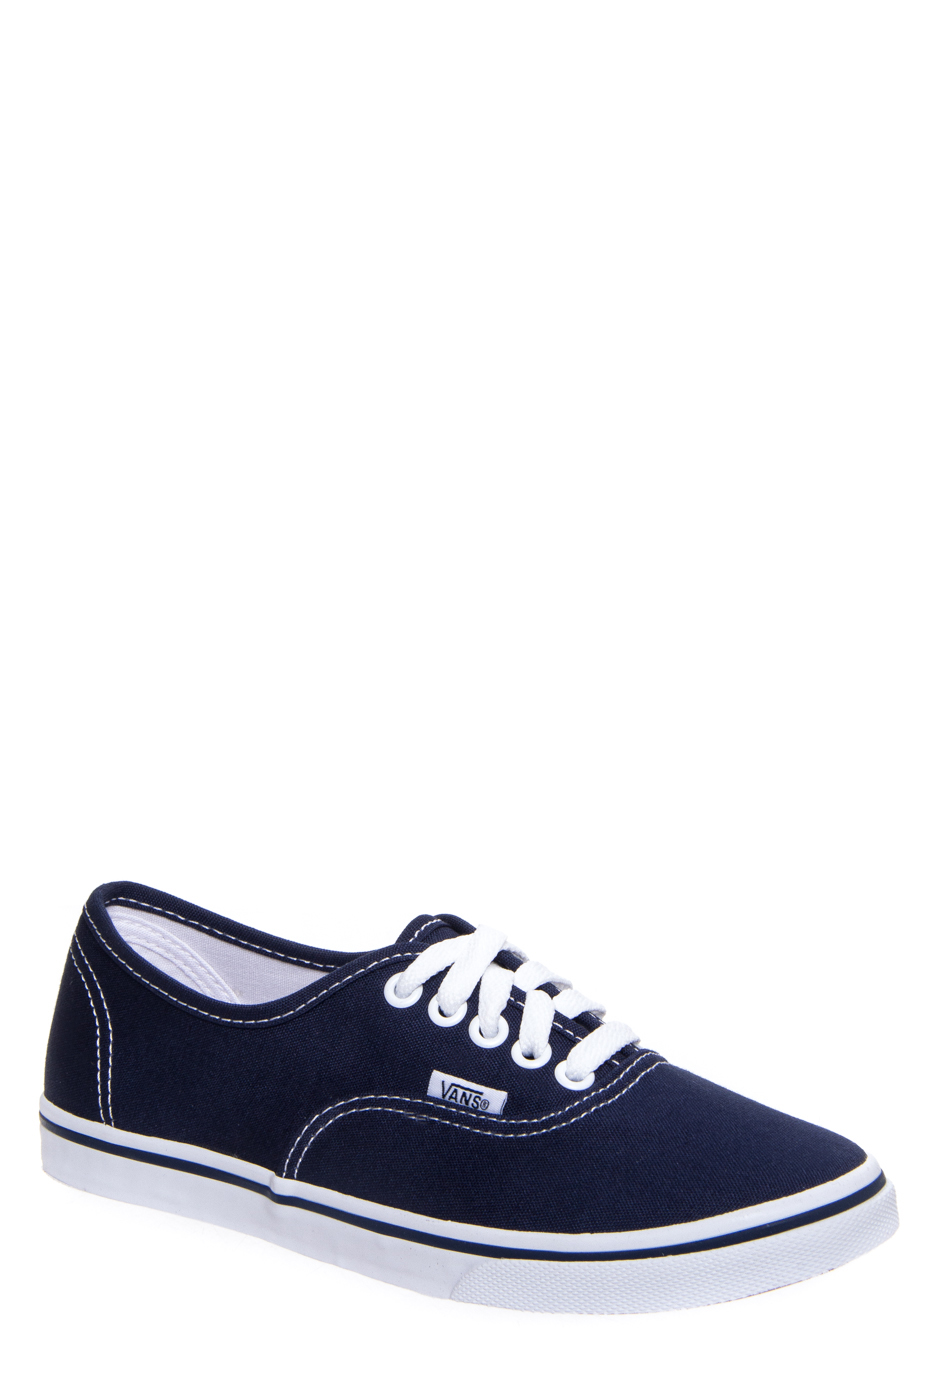 VANS Authentic Lo Pro Lace Up Sneakers - Navy